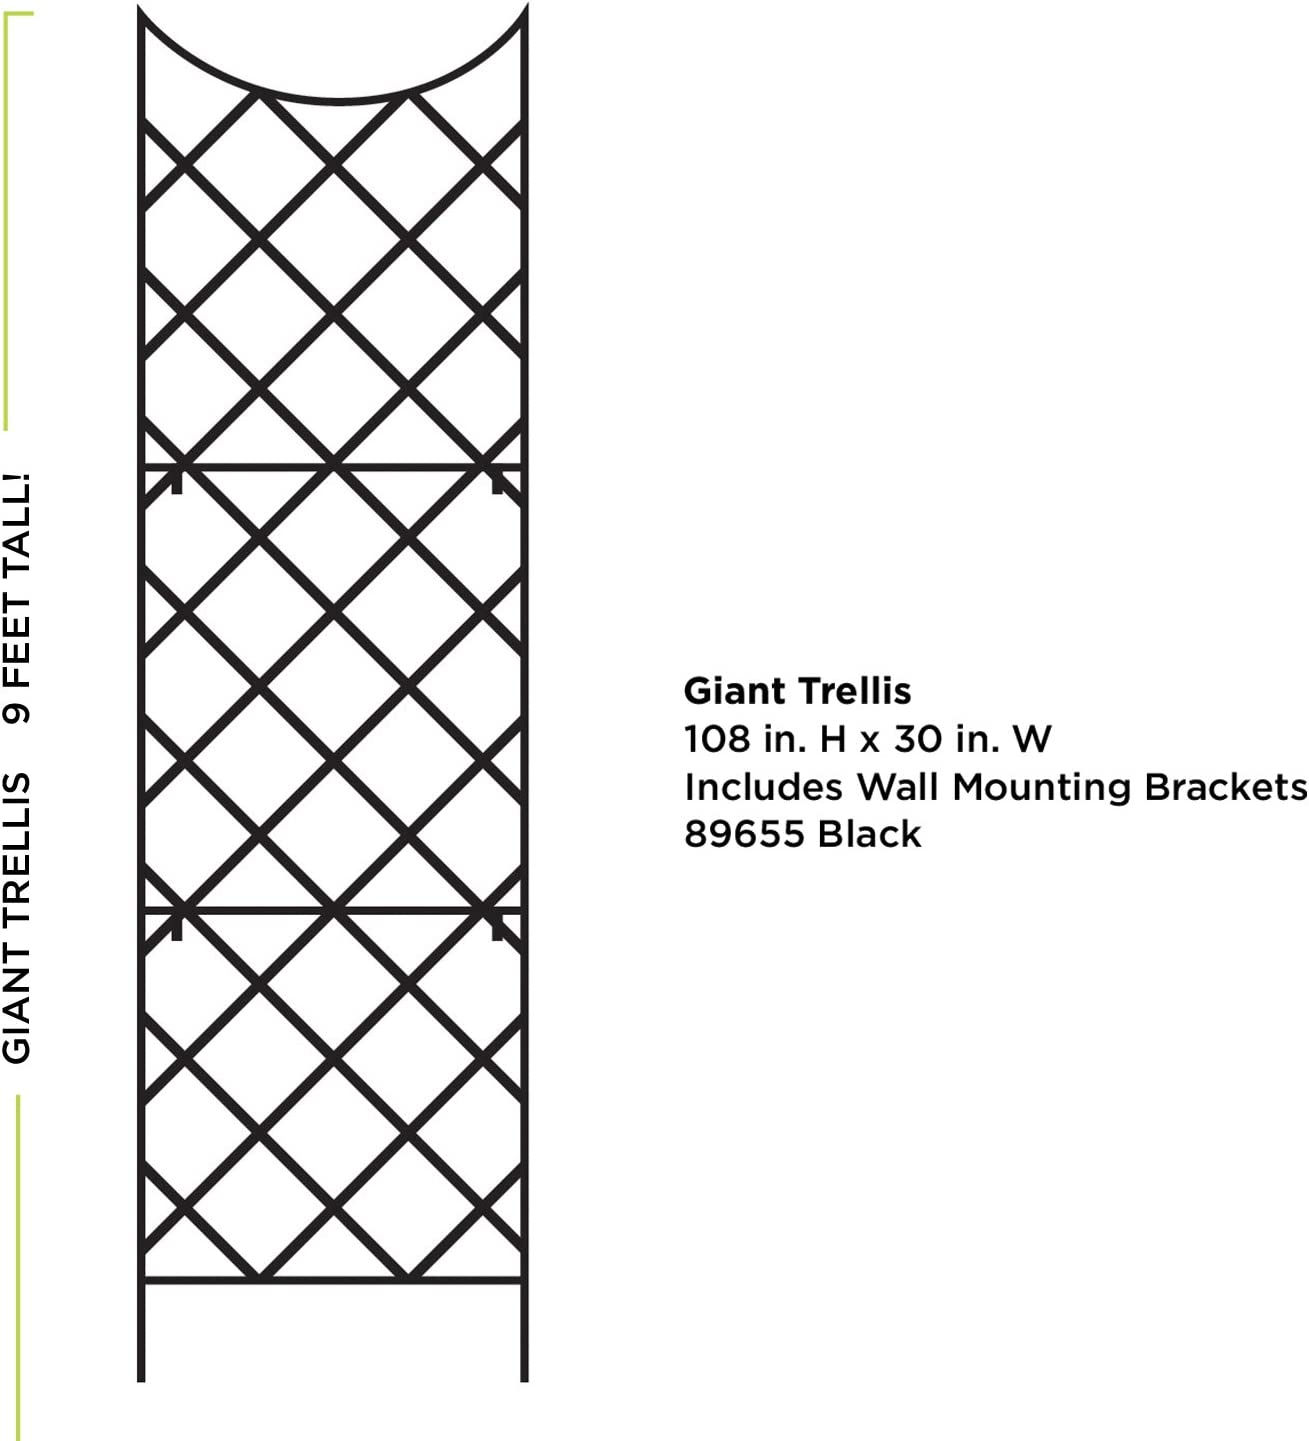 Panacea 89655 Giant Trellis, Includes Wall-Mounting Brackets, 108-Inch Height by 30-Inch Width, Black